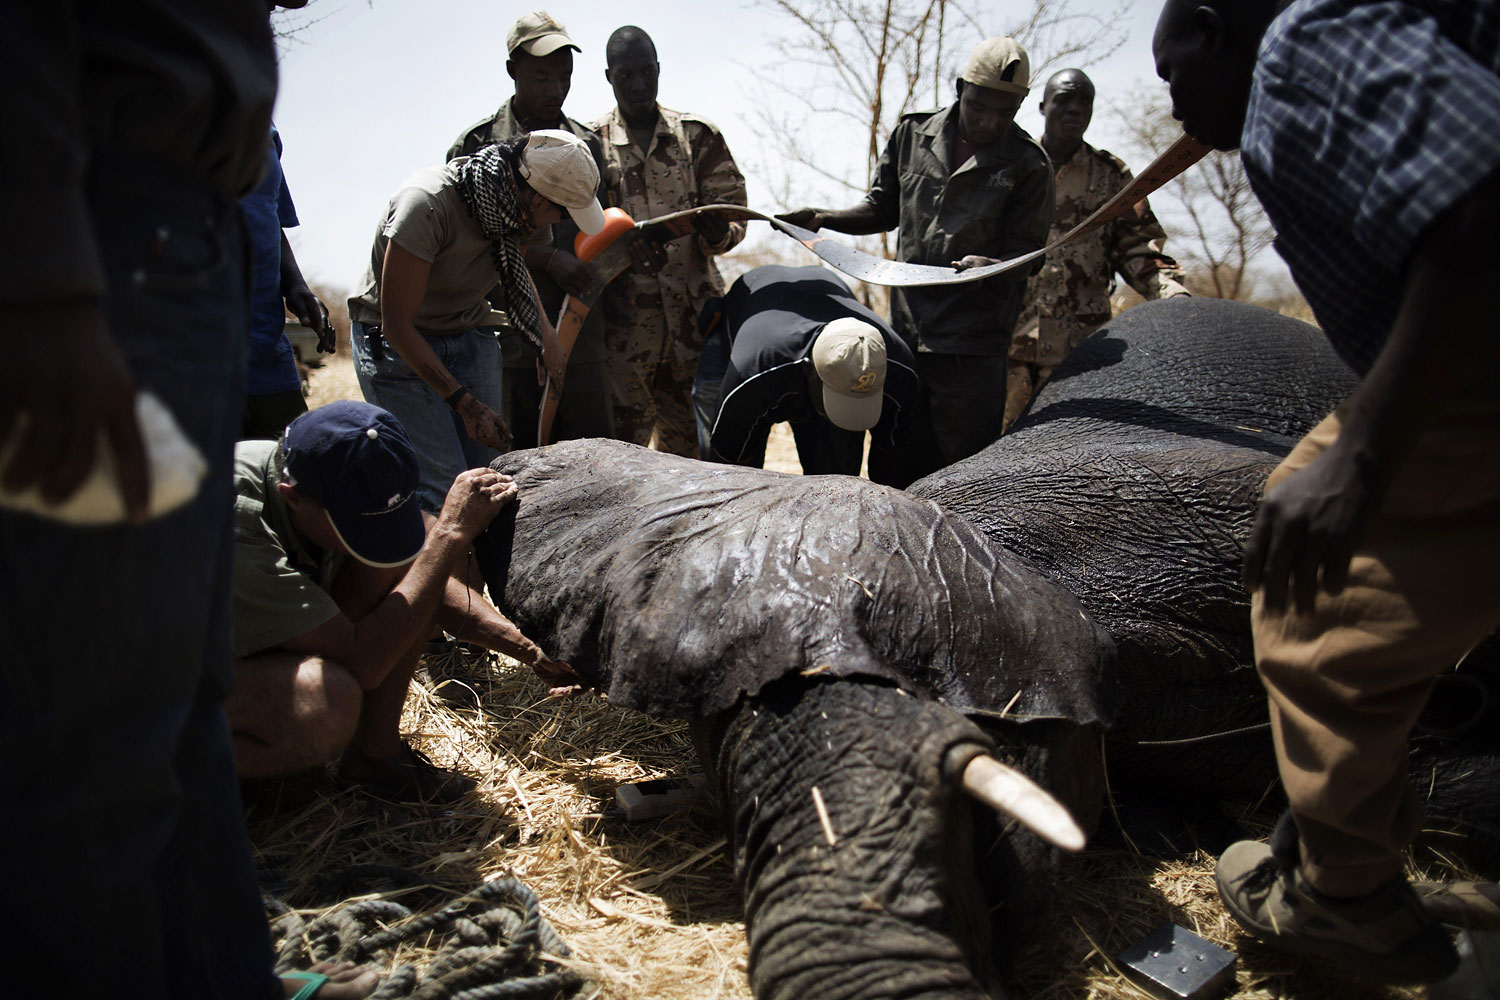 African Parks staff apply a collar to an elephant, darted at the Zakouma National Park on Feb. 23, 2014 during a collaring operation aimed at preserving elephants in the park.